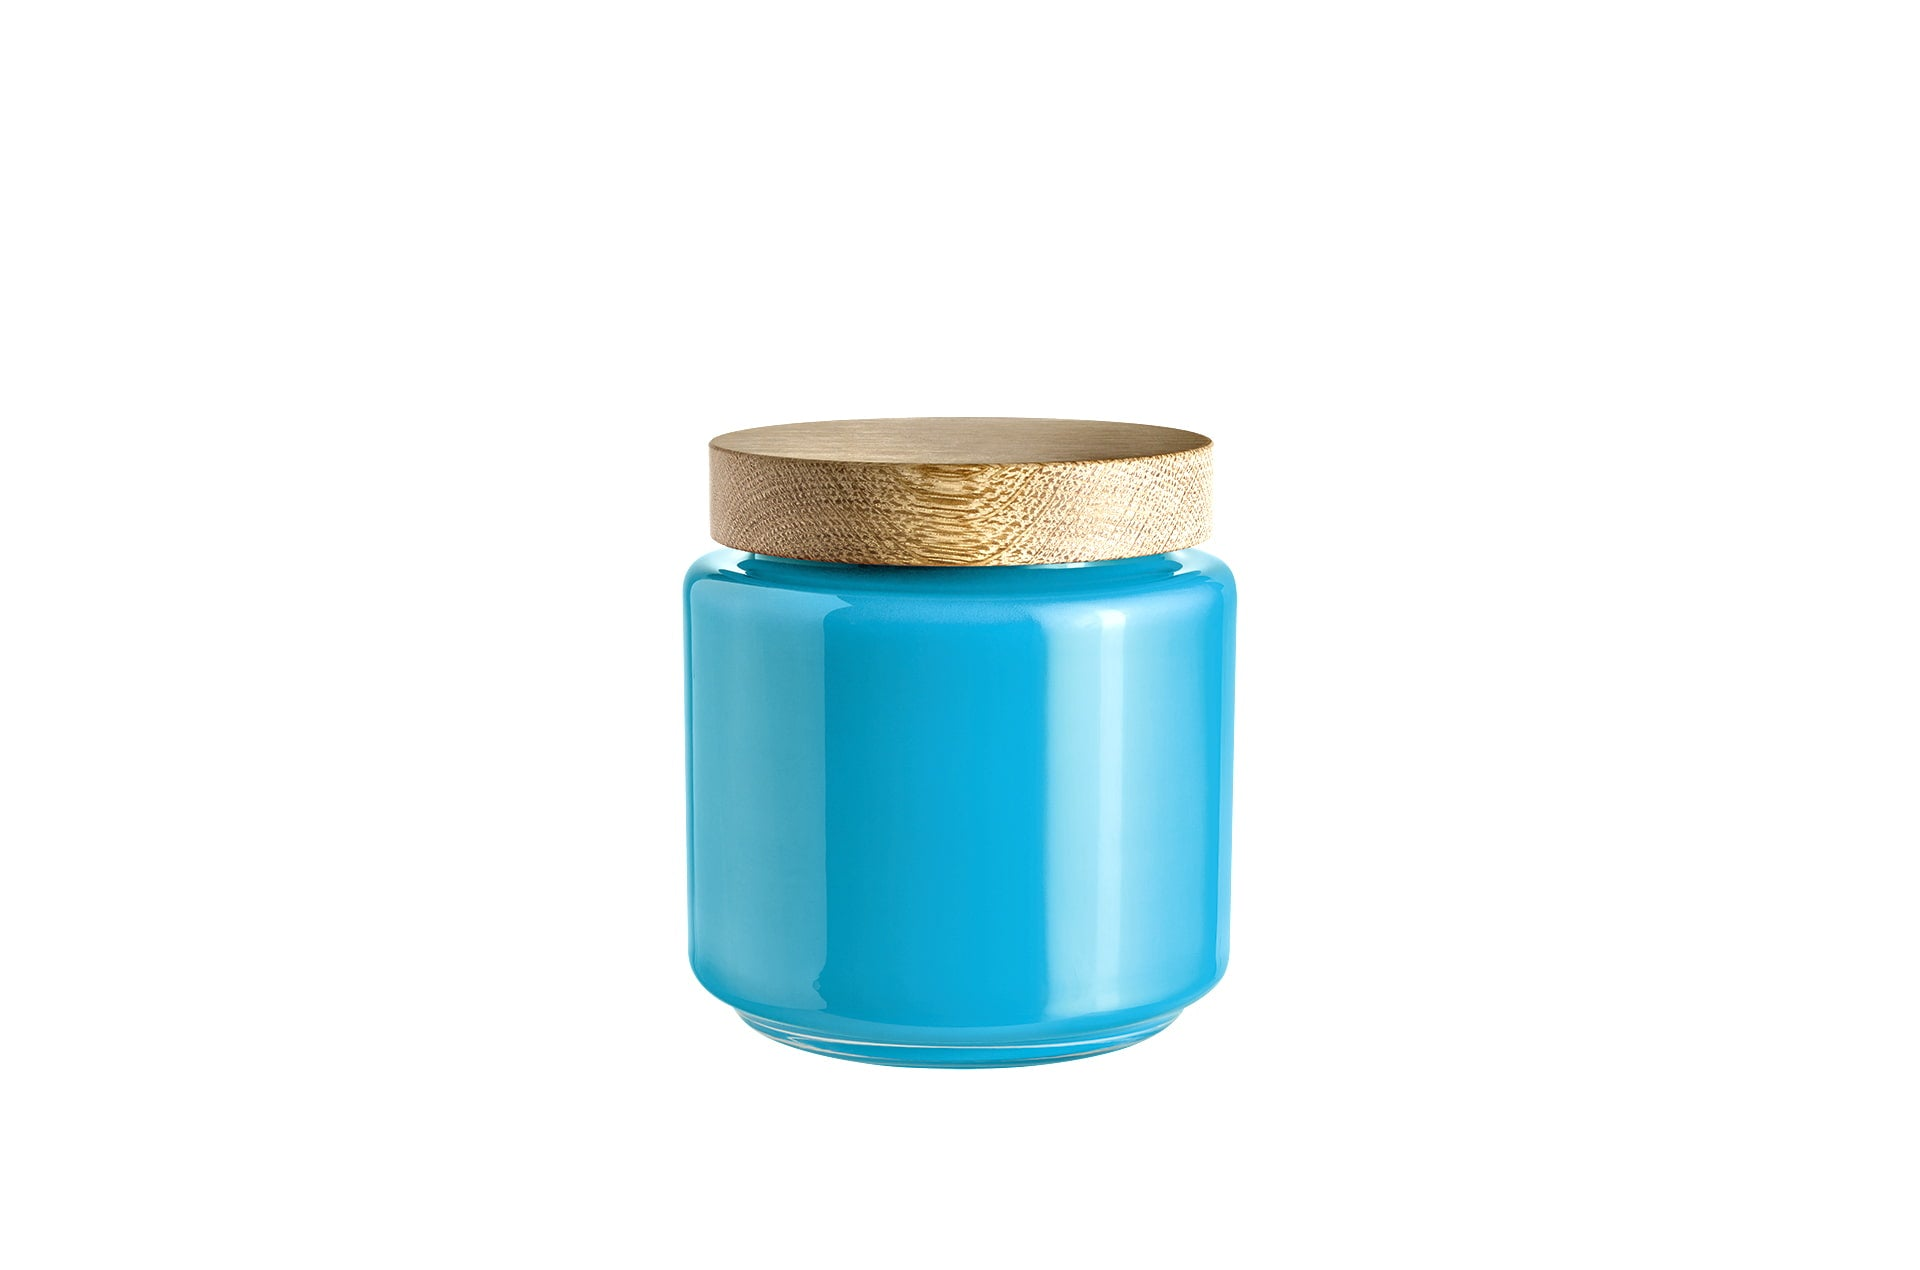 Bocal verre soufflé bleu 2L PALET JAR by Holmegaard-PARIDEO design durable